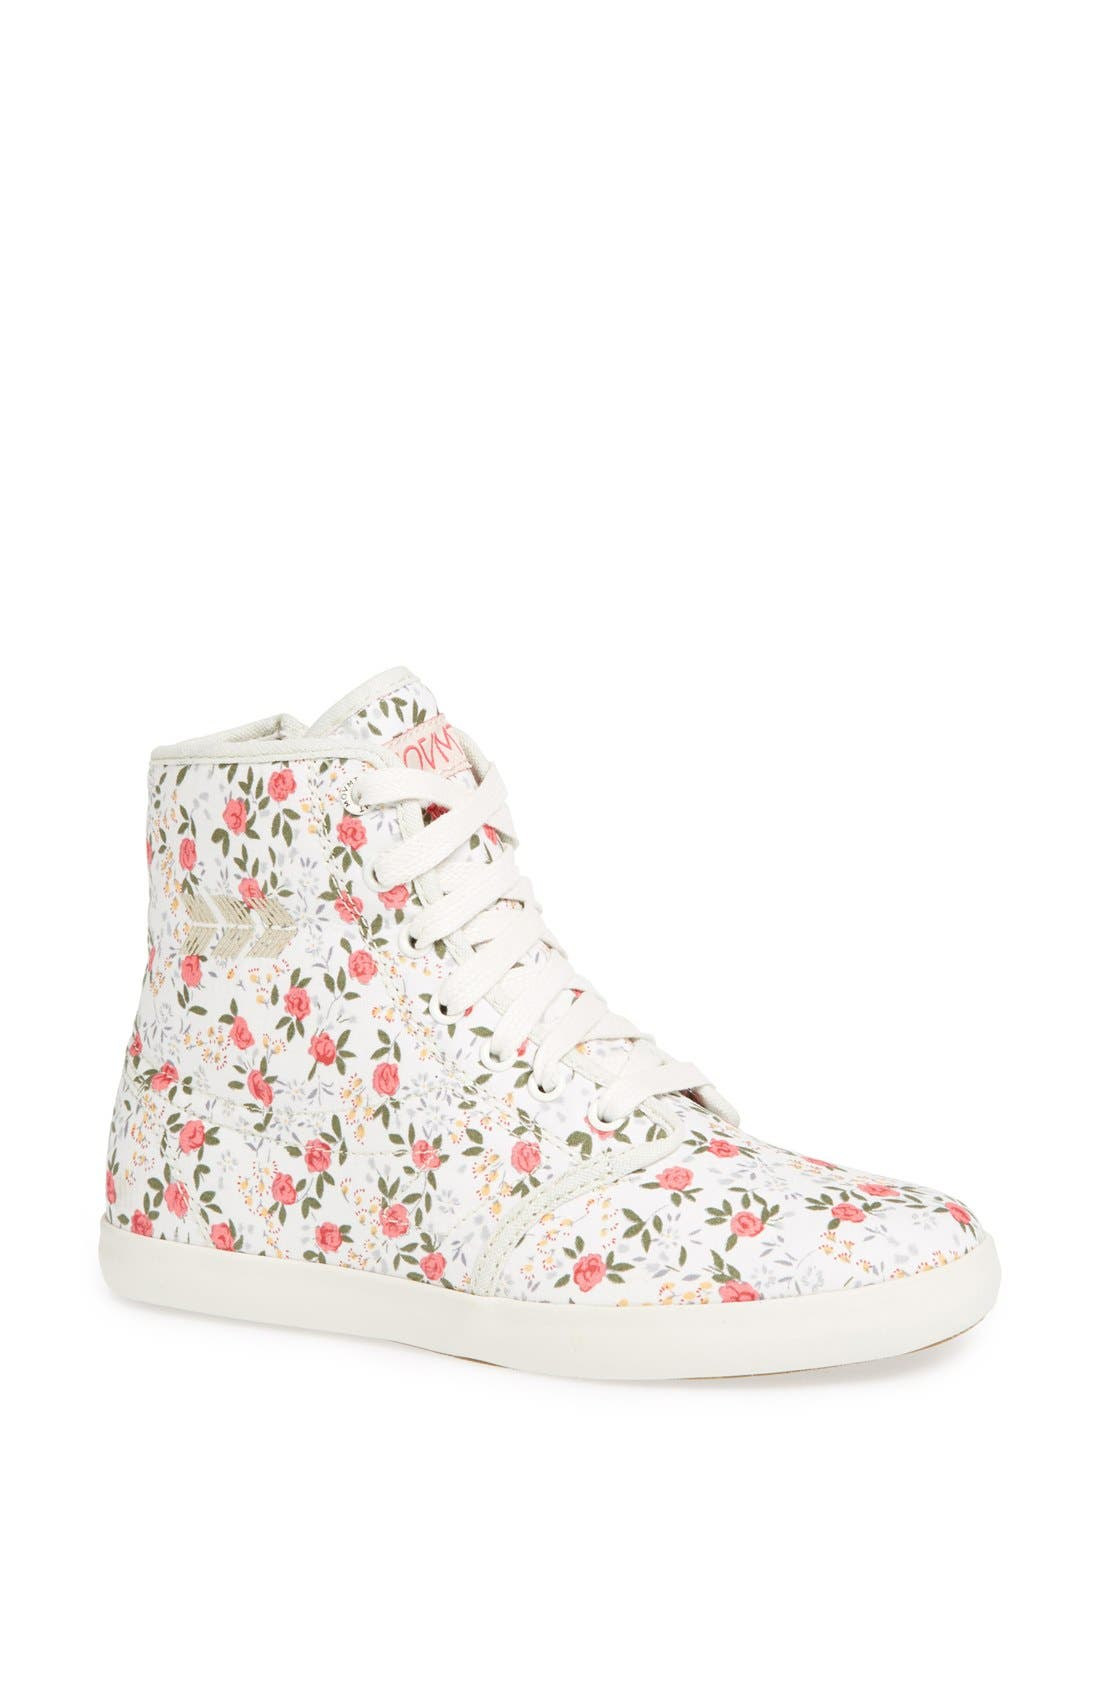 Alternate Image 1 Selected - The People's Movement 'Marcos' High Top Sneaker (Women)